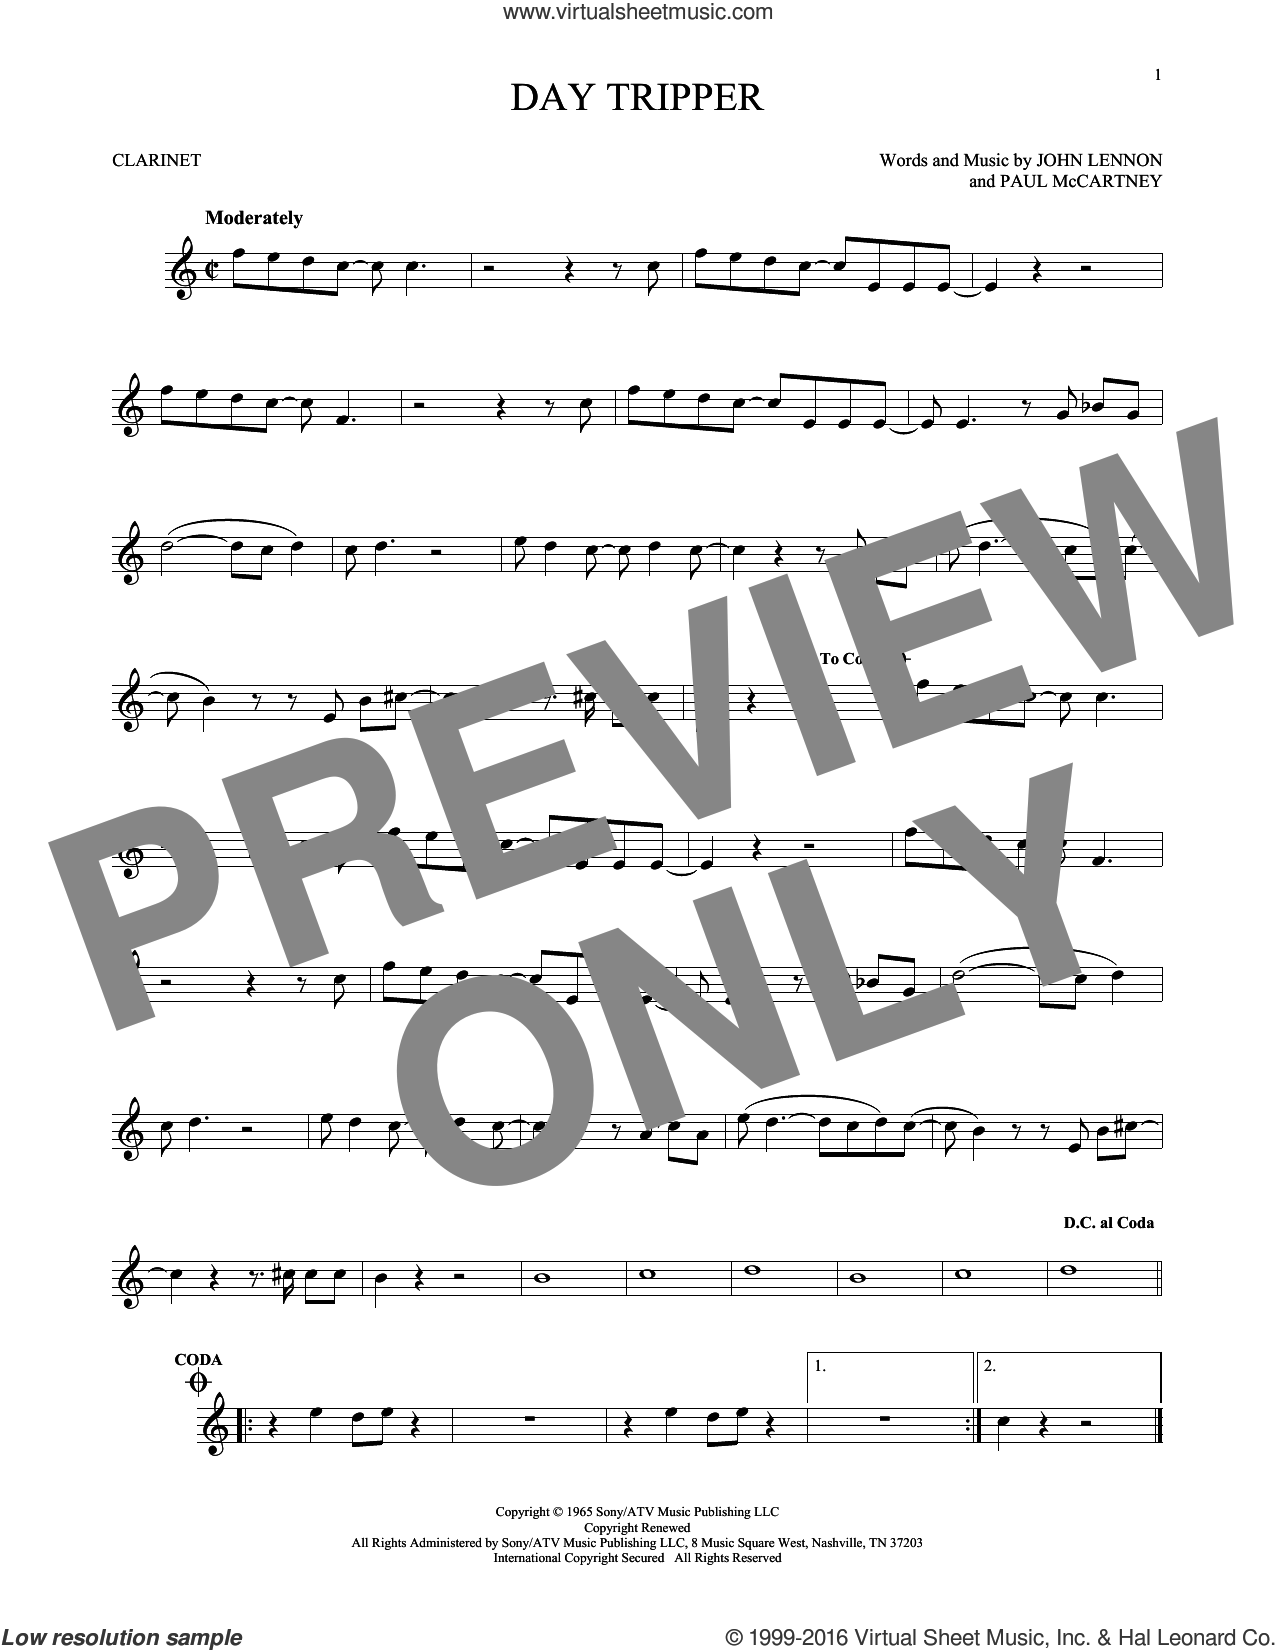 Day Tripper sheet music for clarinet solo by The Beatles, John Lennon and Paul McCartney, intermediate skill level